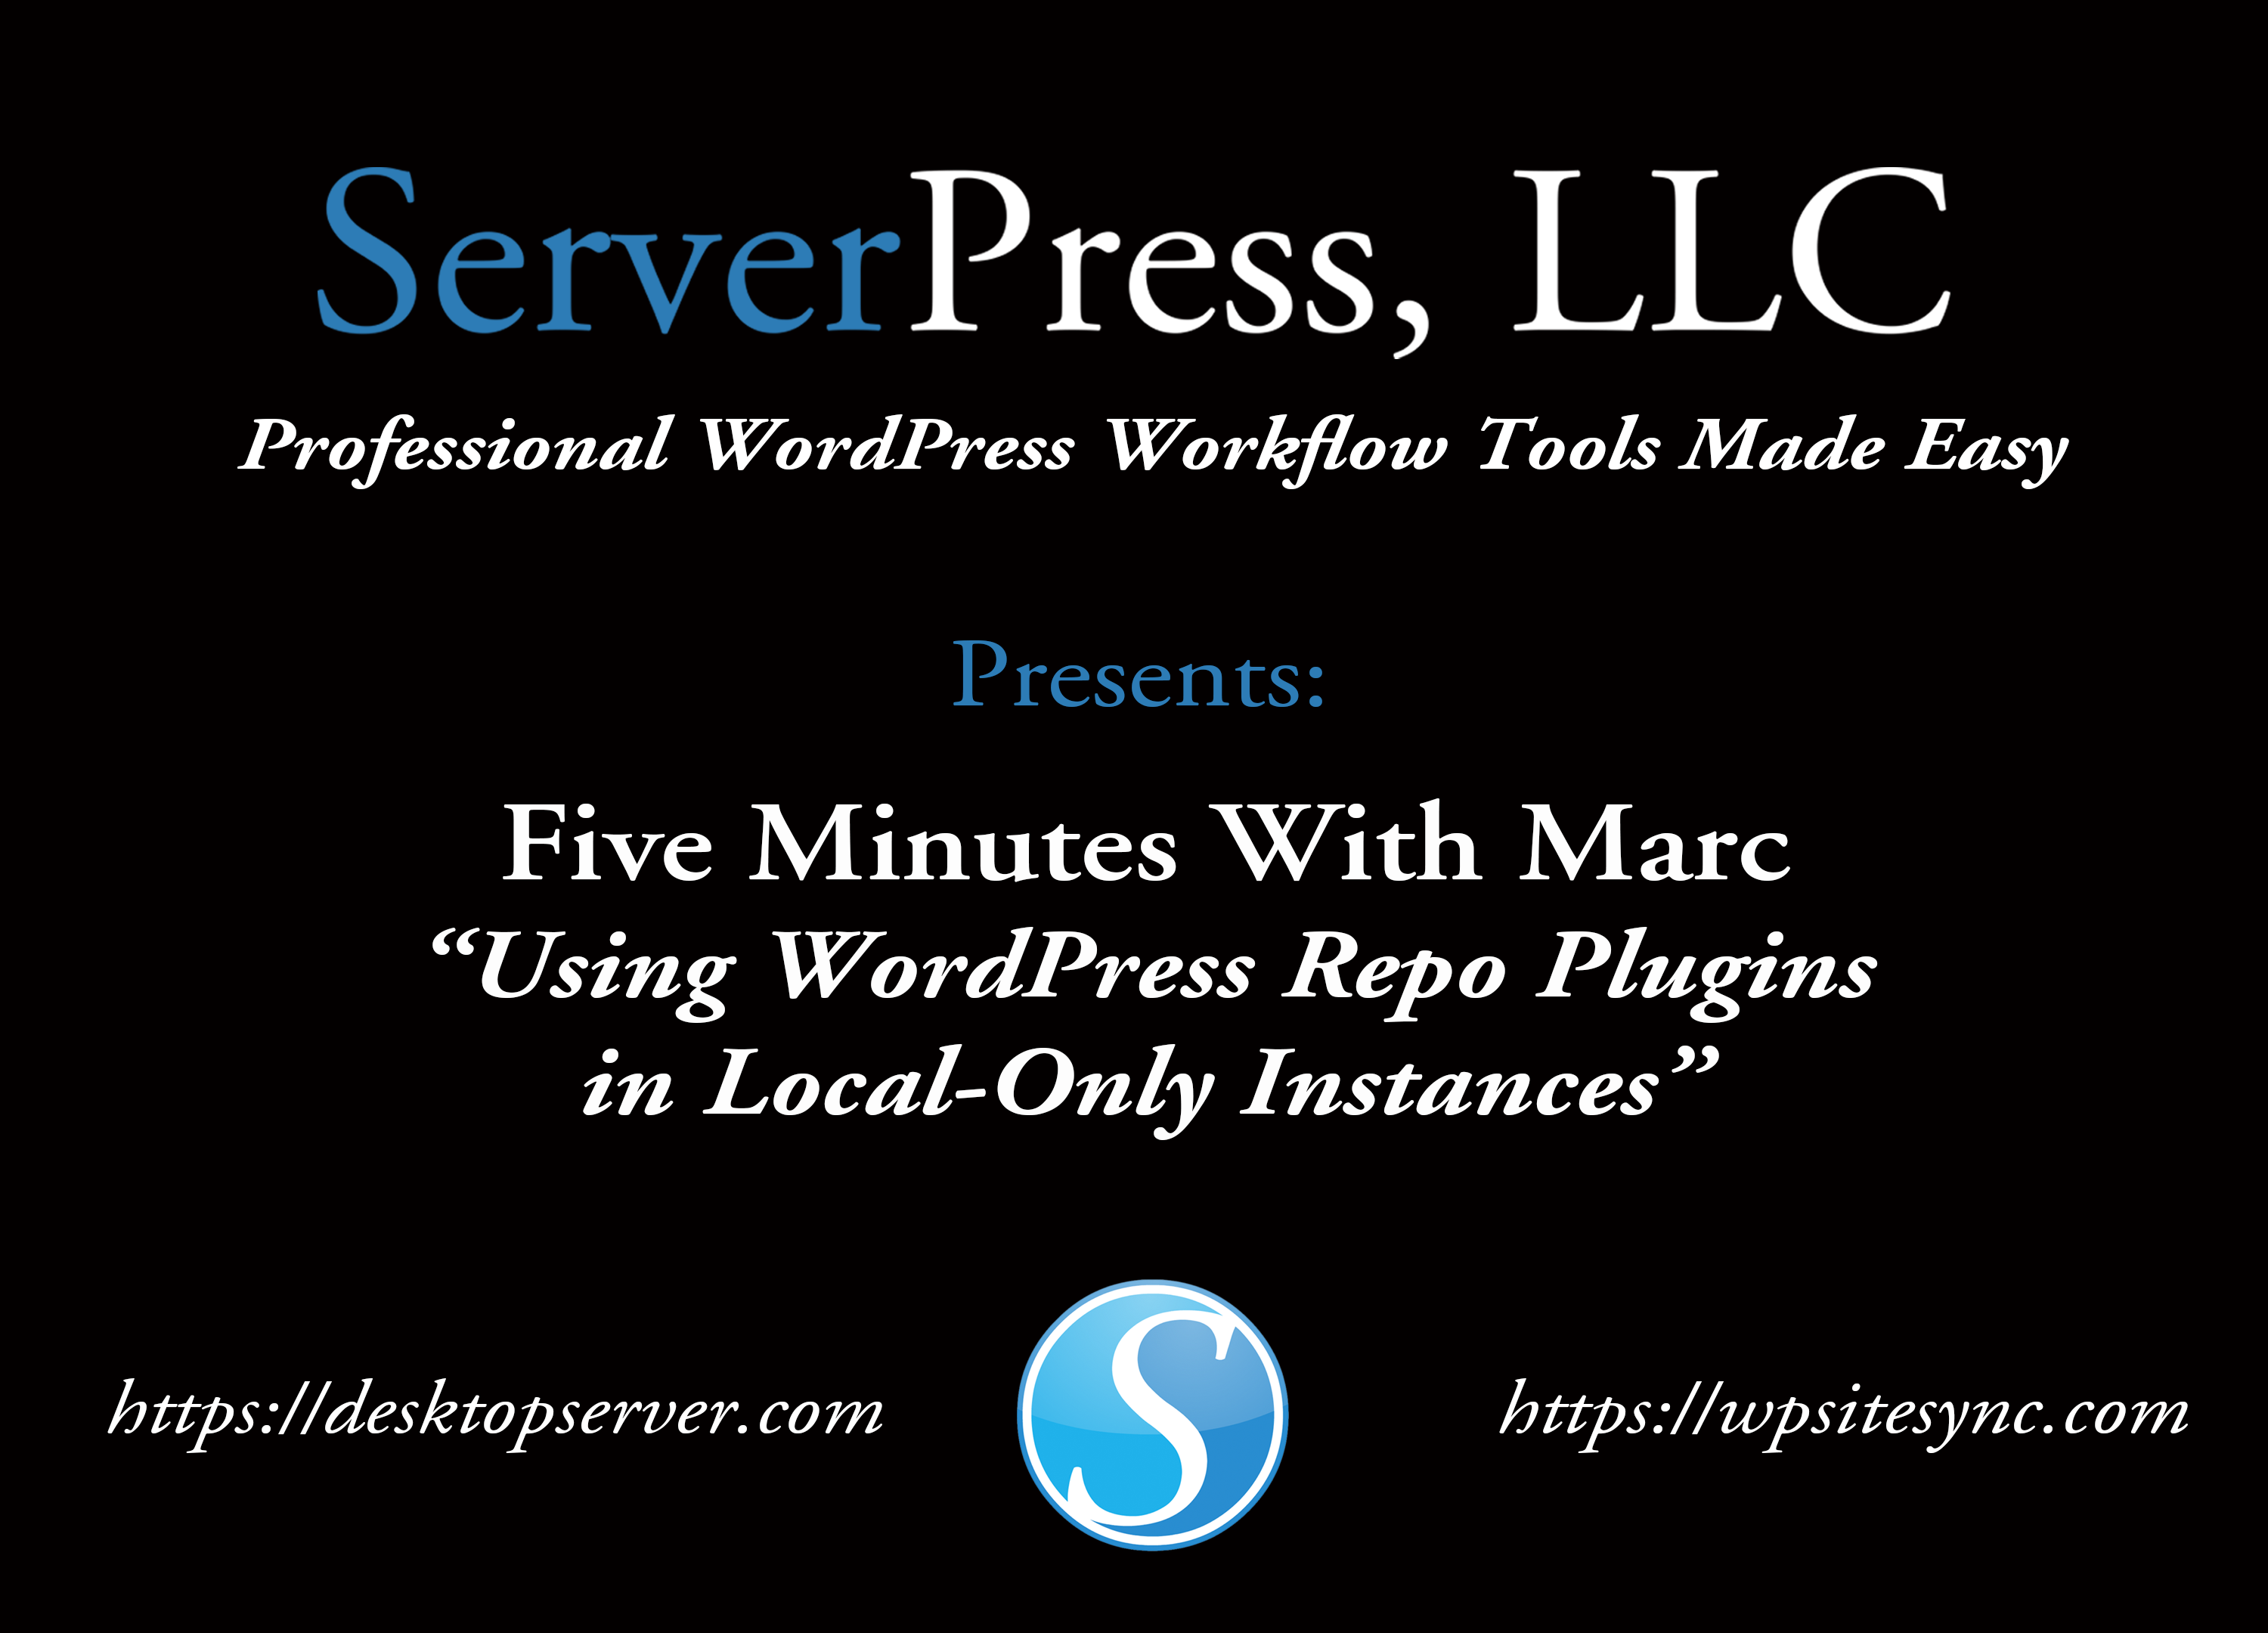 Announcing Our Latest Video Series: Five Minutes (or Less) With Marc